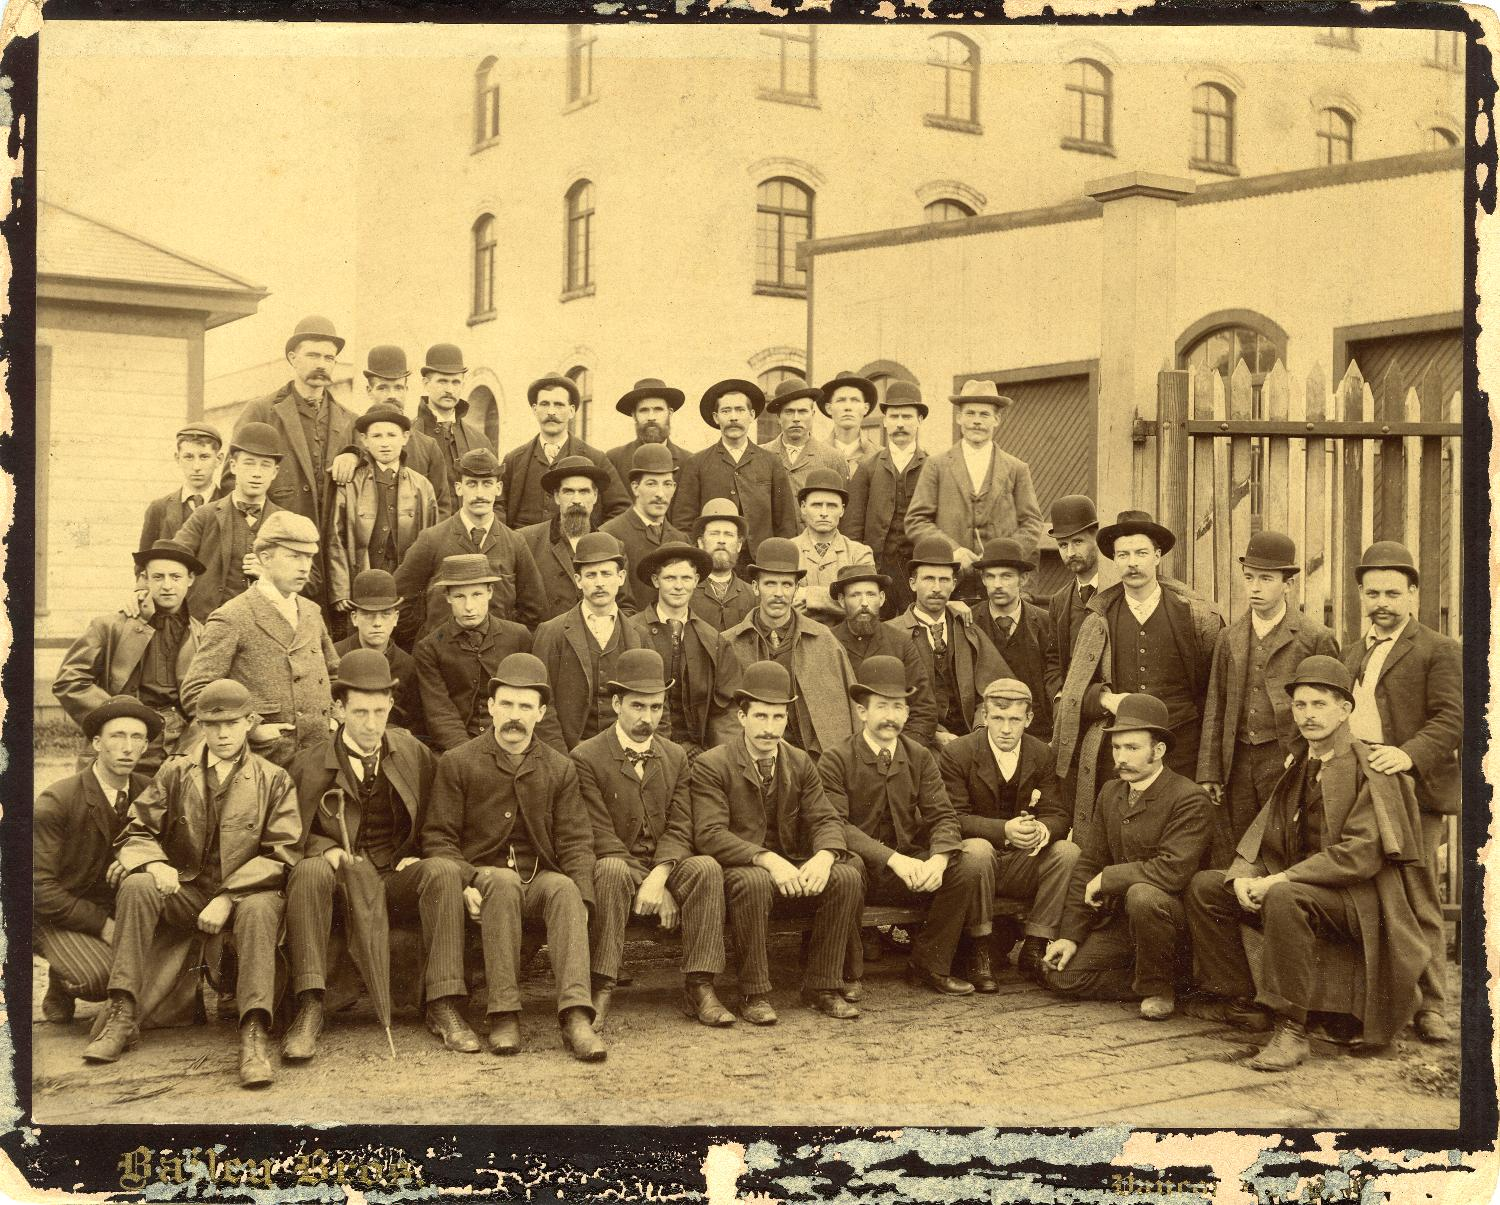 Refinery construction gang, 1891; Reference code: AM1592-1-S5-F03: 2011-092.1737